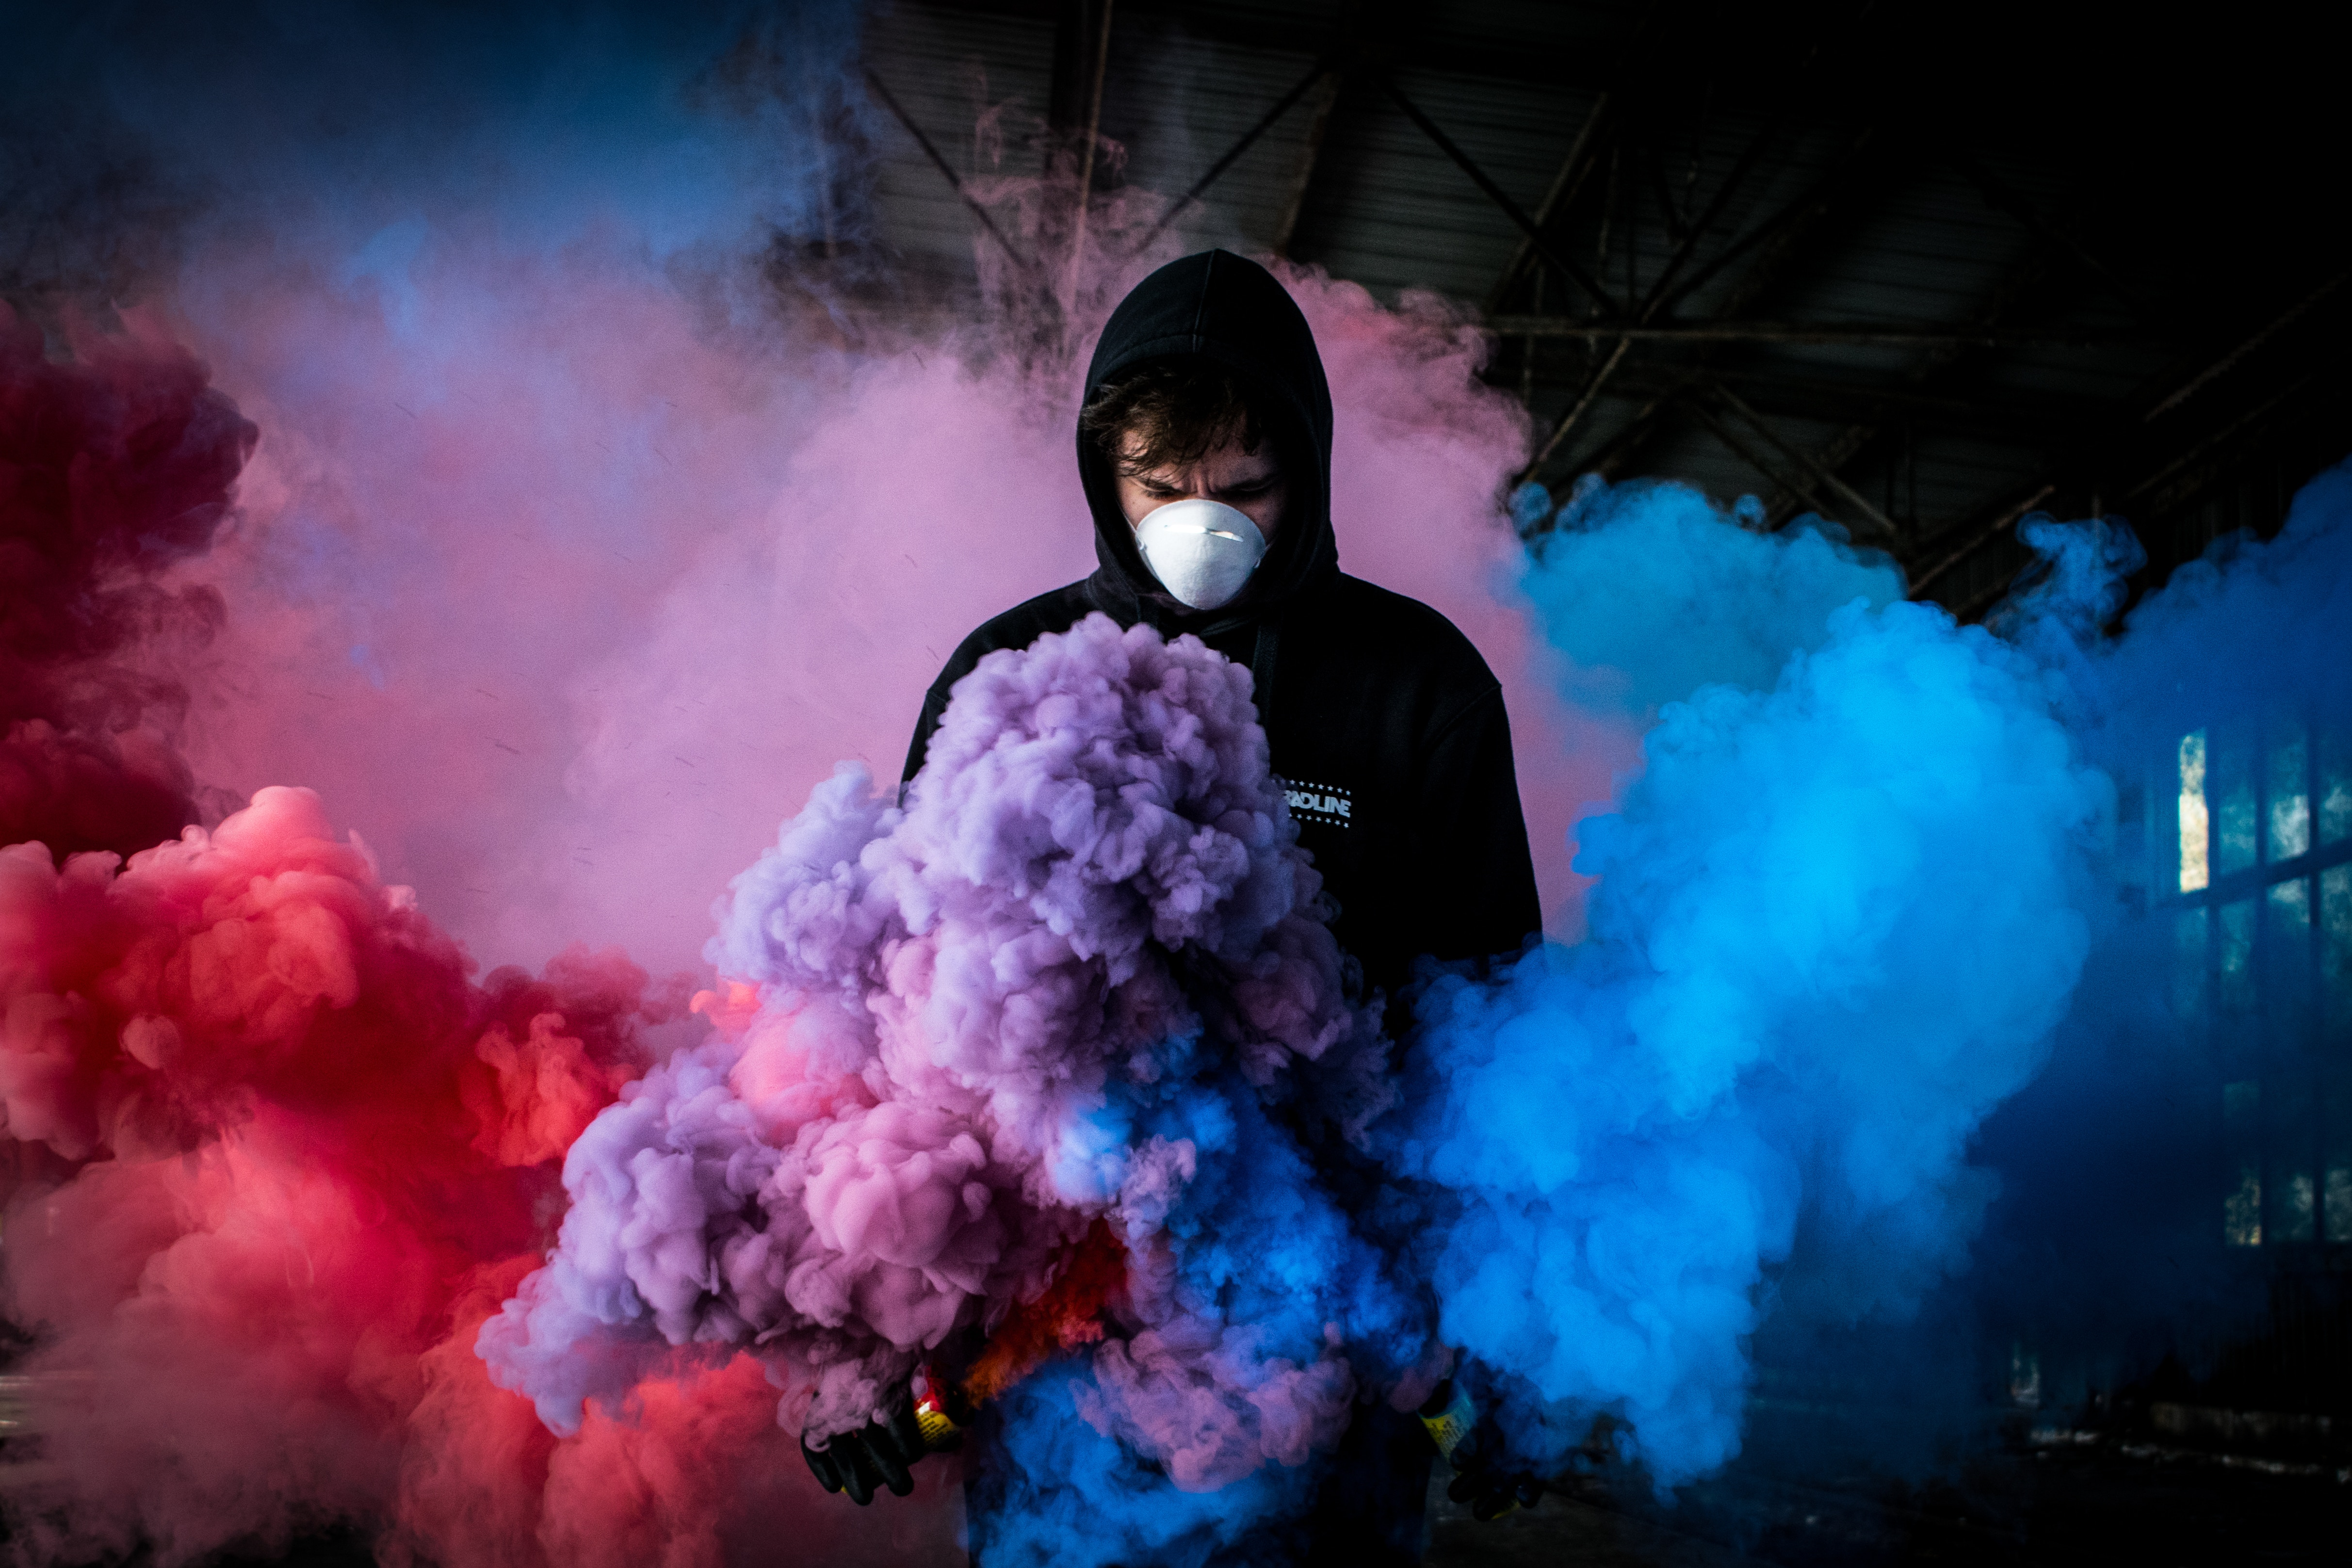 Boy with smoke bomb colorful 5k